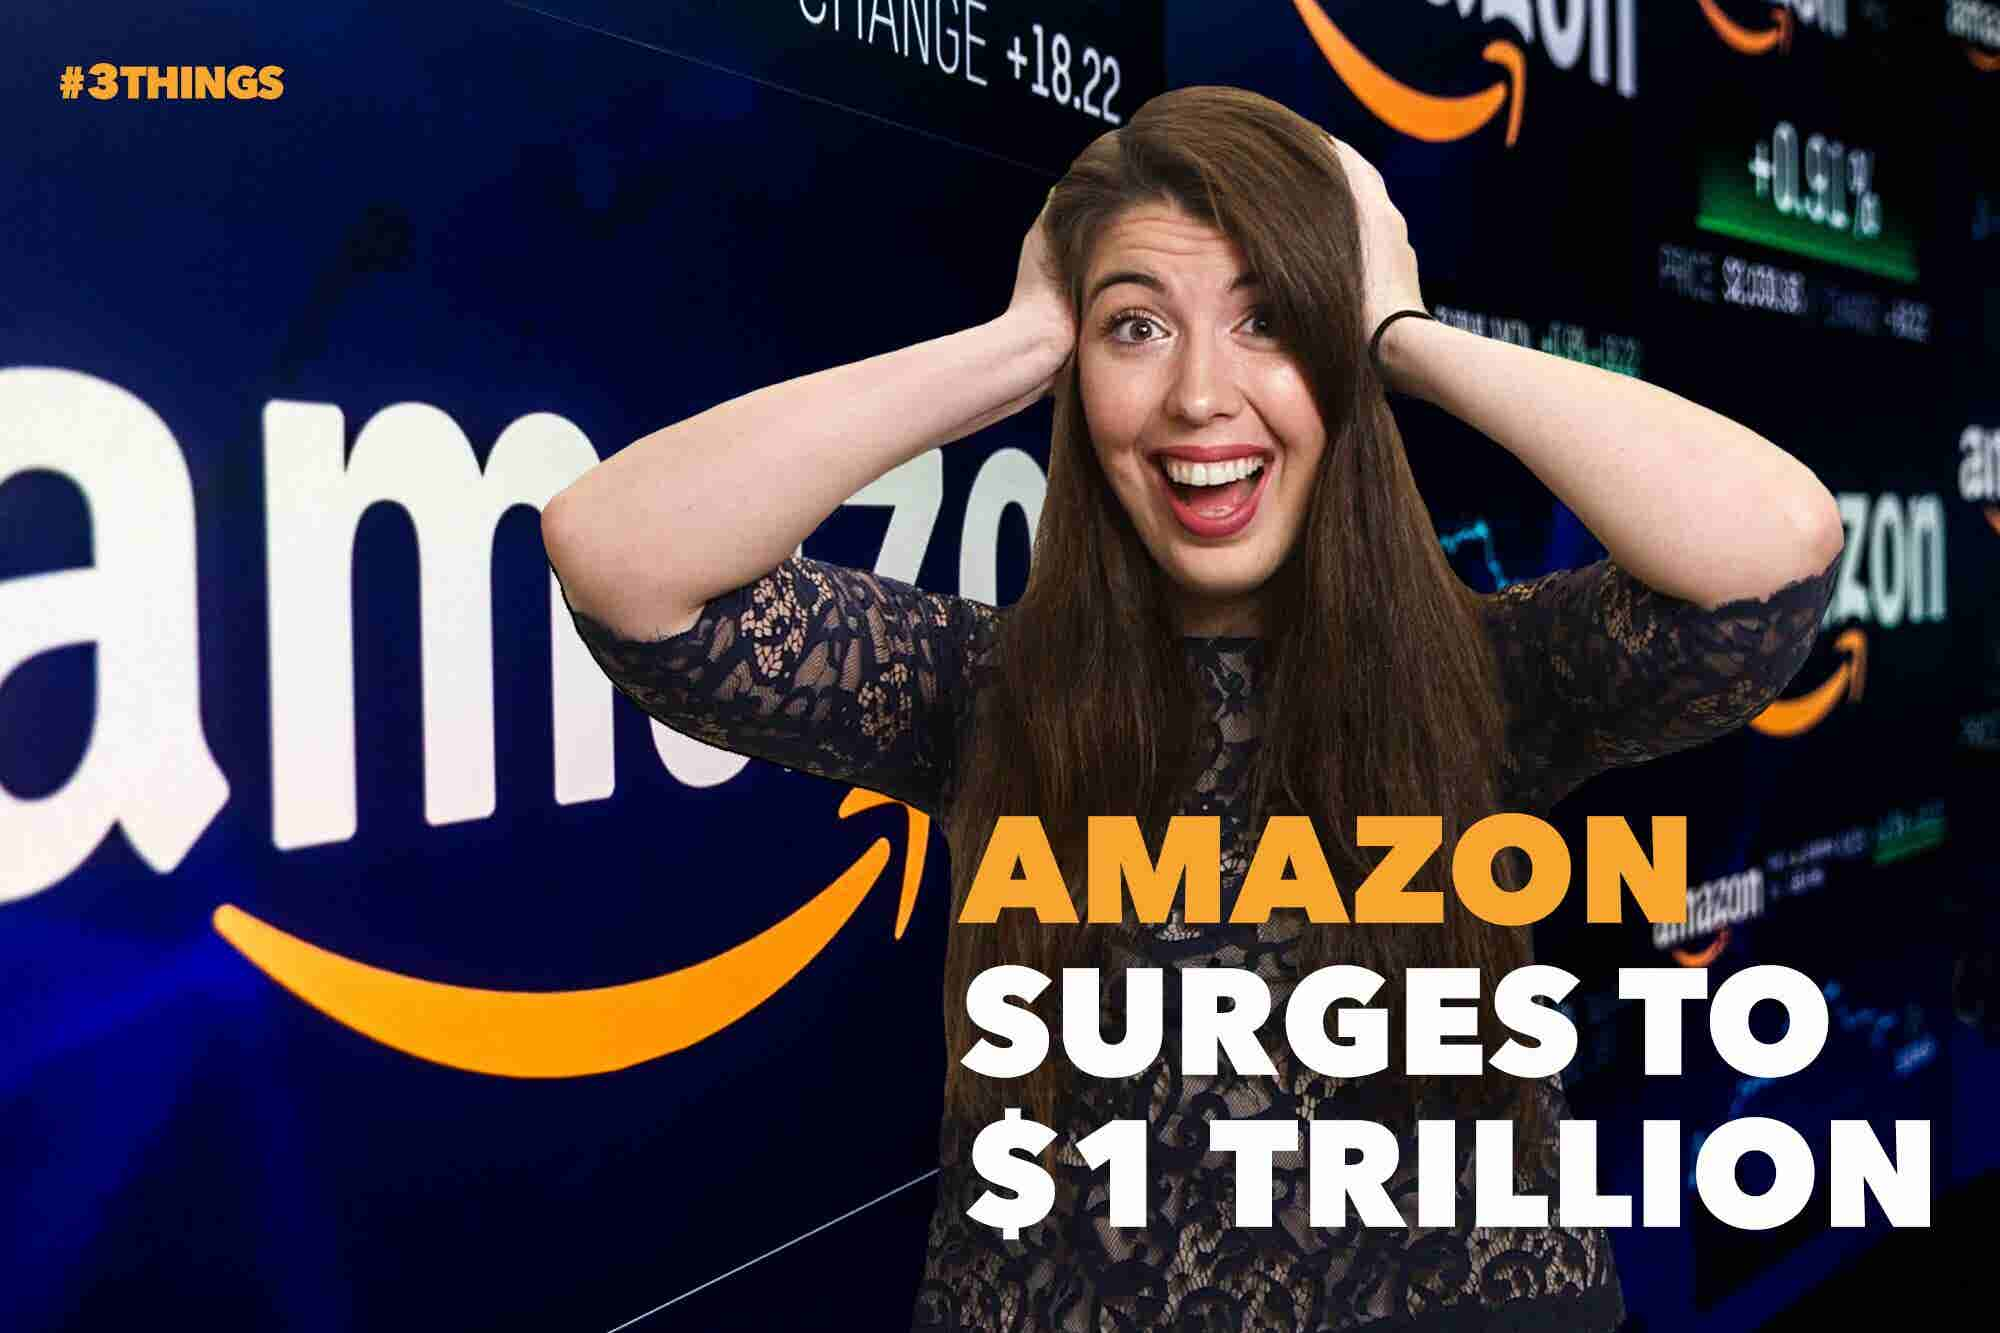 Amazon Surges to $1 Trillion. 3 Things to Know Today.